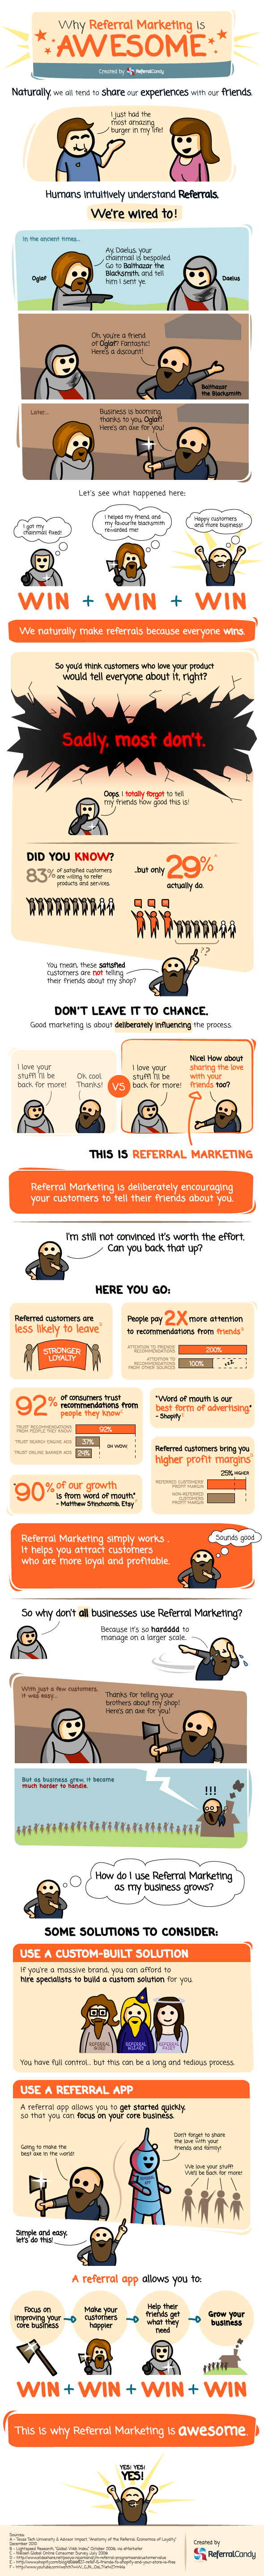 Why Referral Marketing is Awesome [Infographic by ReferralCandy]